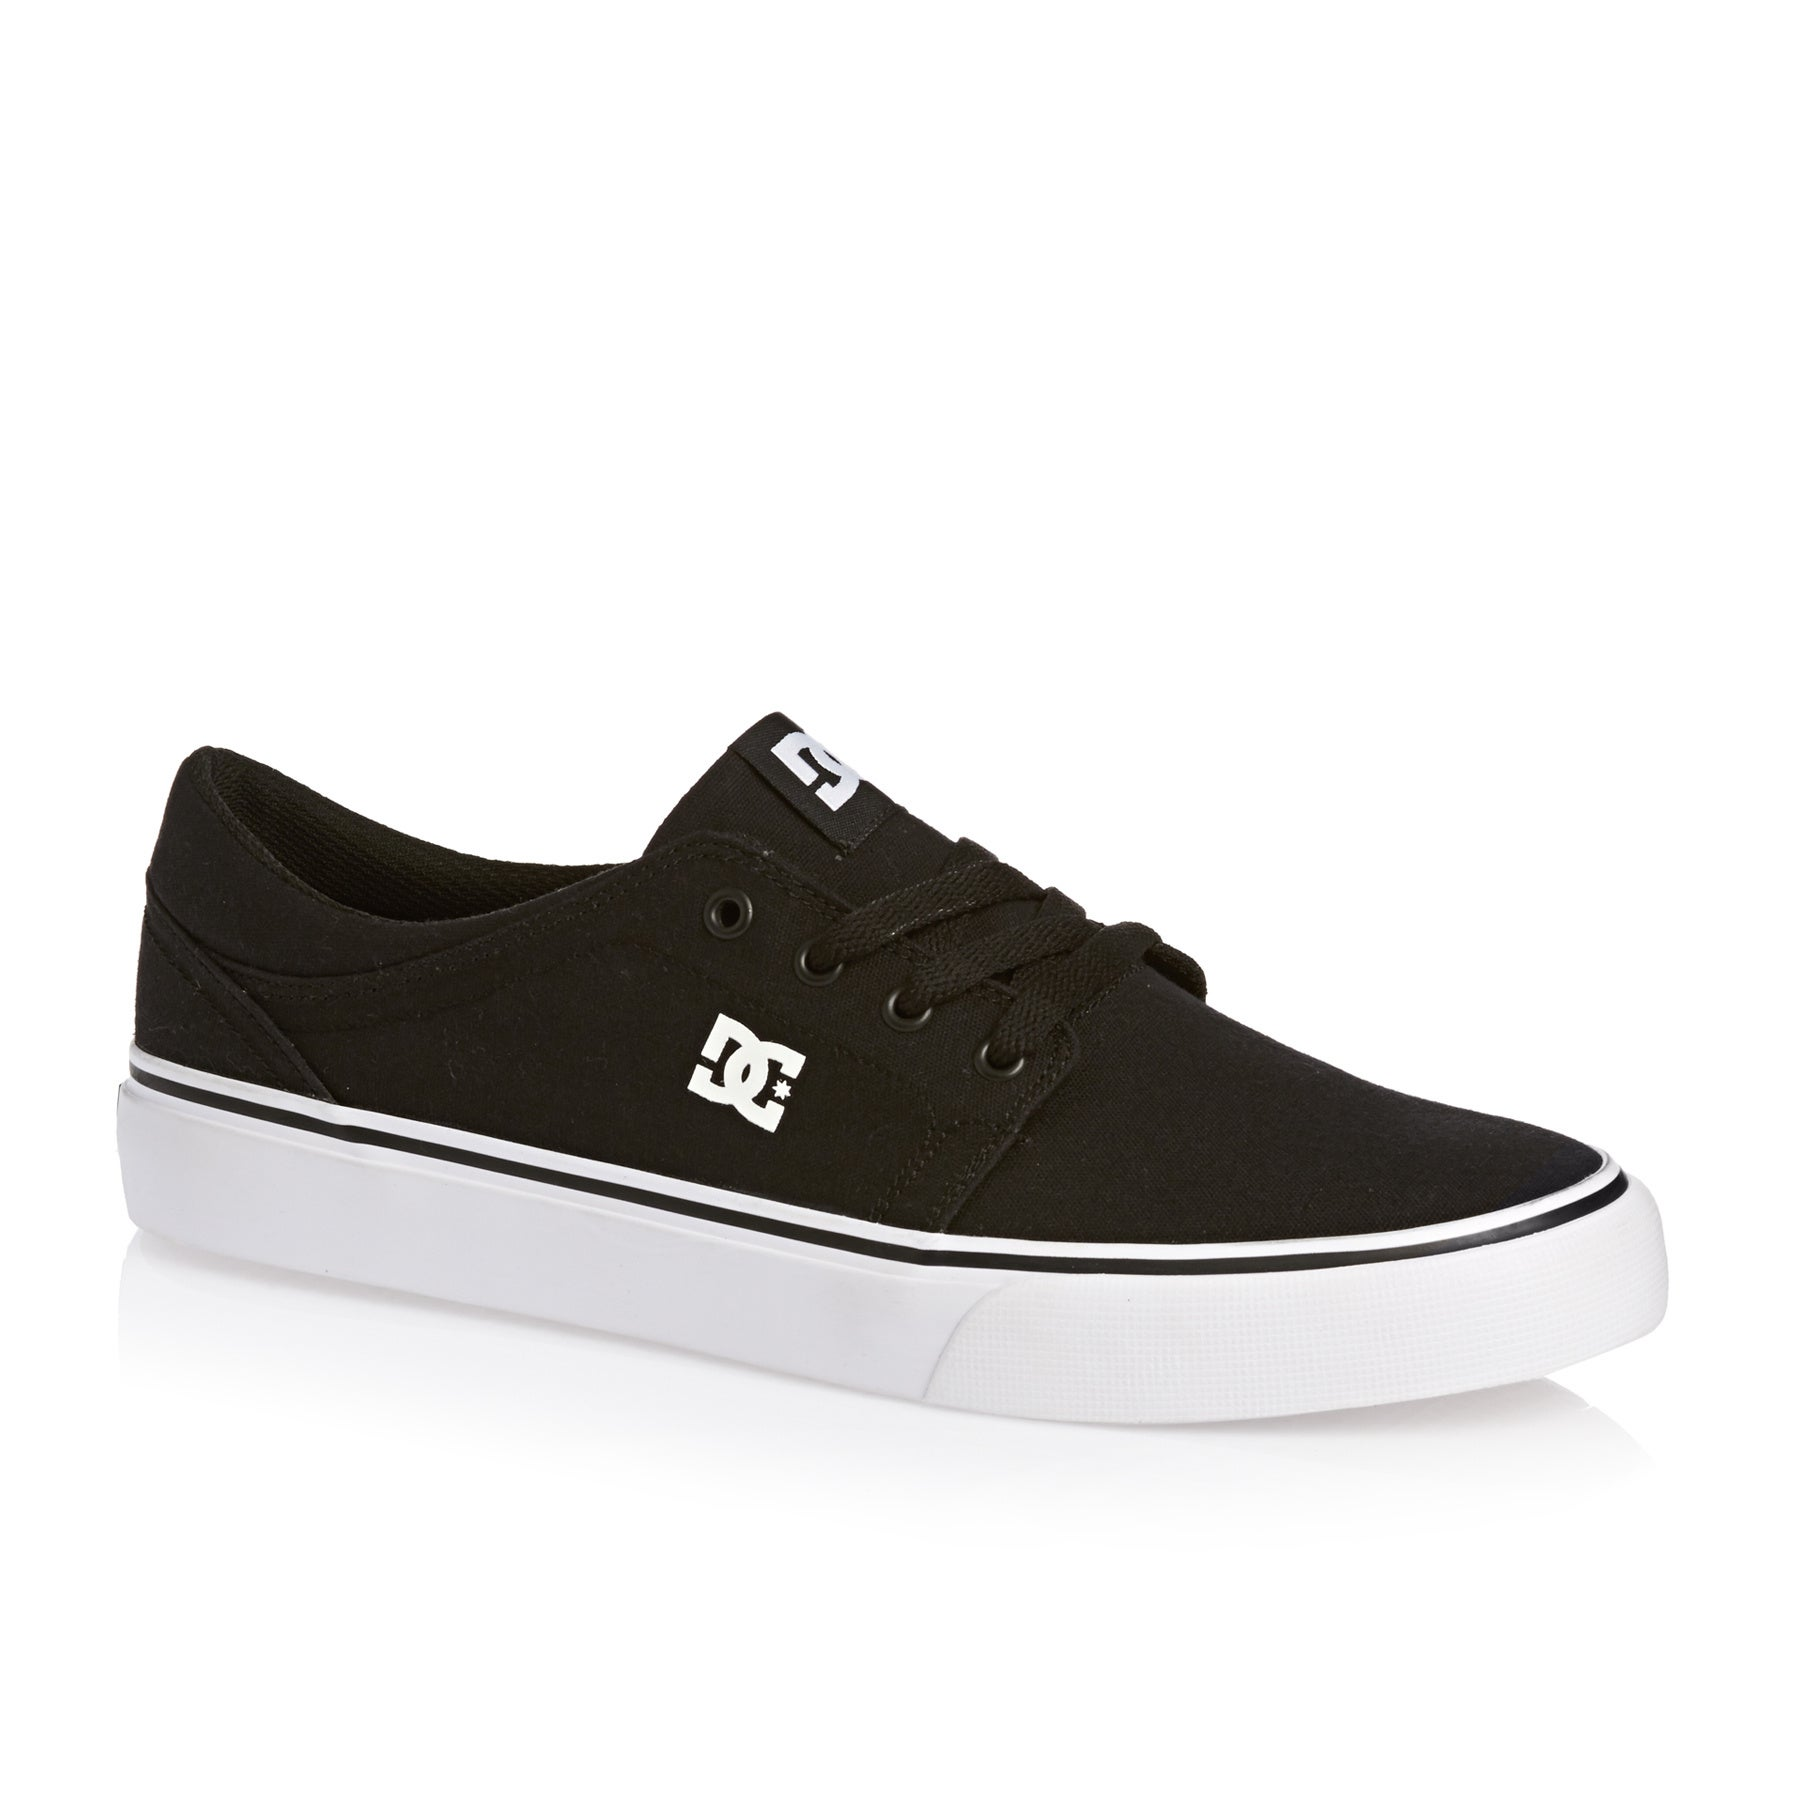 DC Trase TX Shoes - Black White